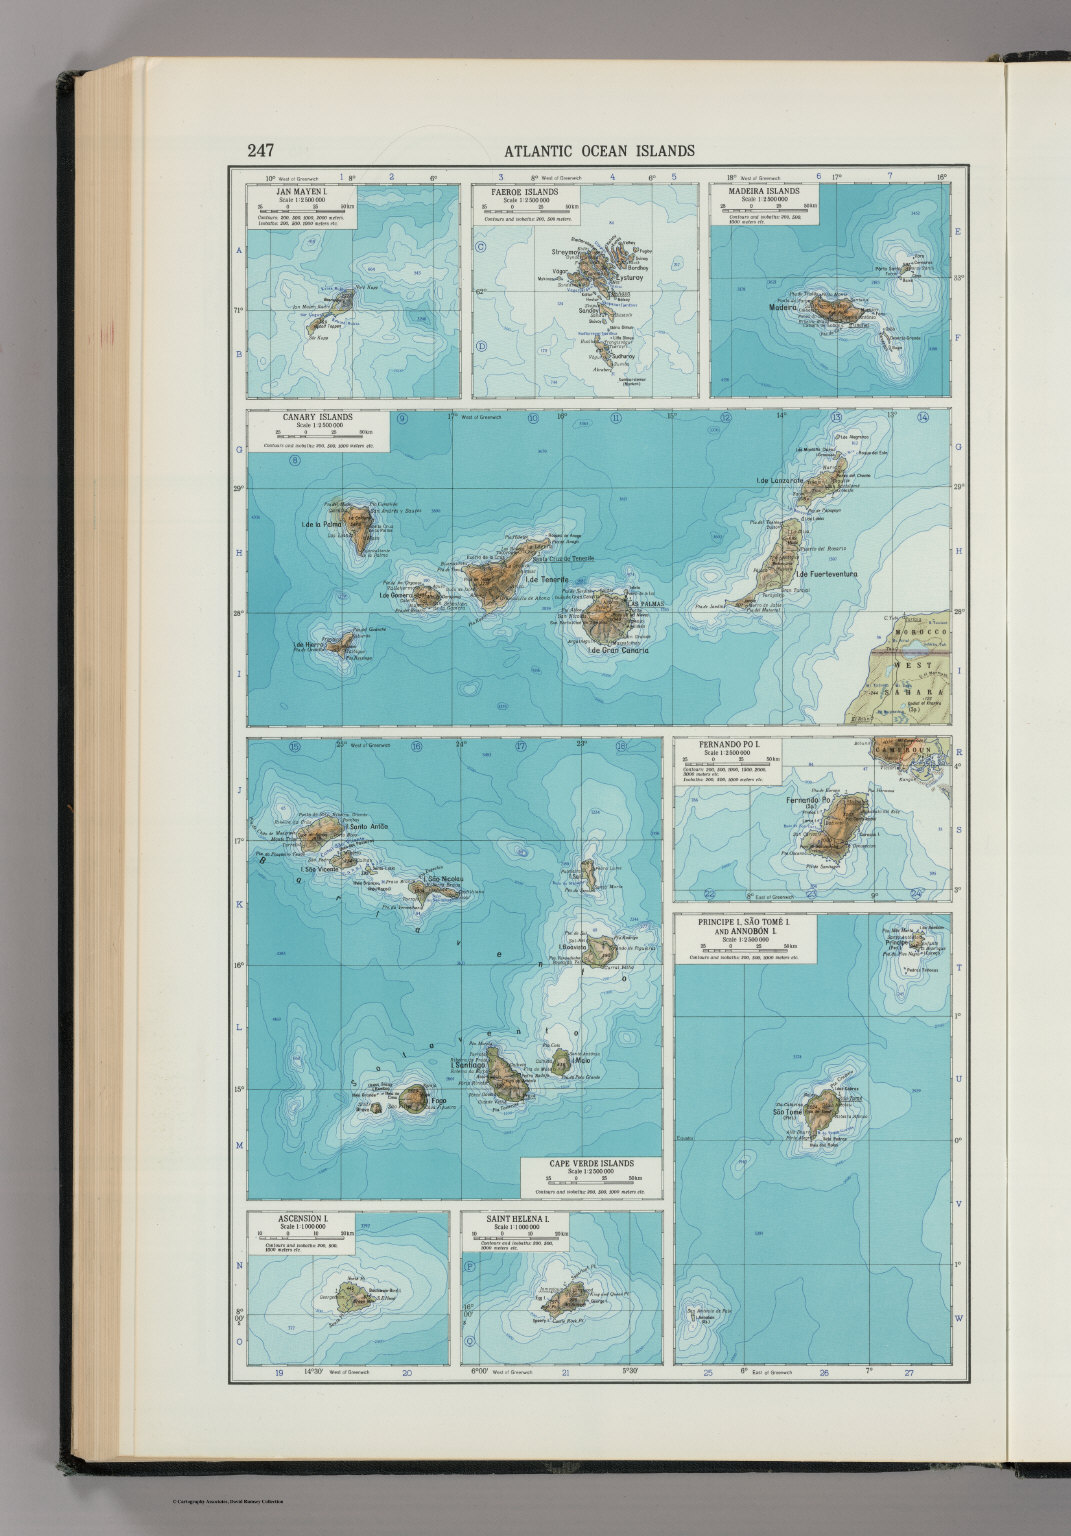 247 atlantic ocean islands the world atlas david rumsey atlantic ocean islands the world atlas gumiabroncs Gallery